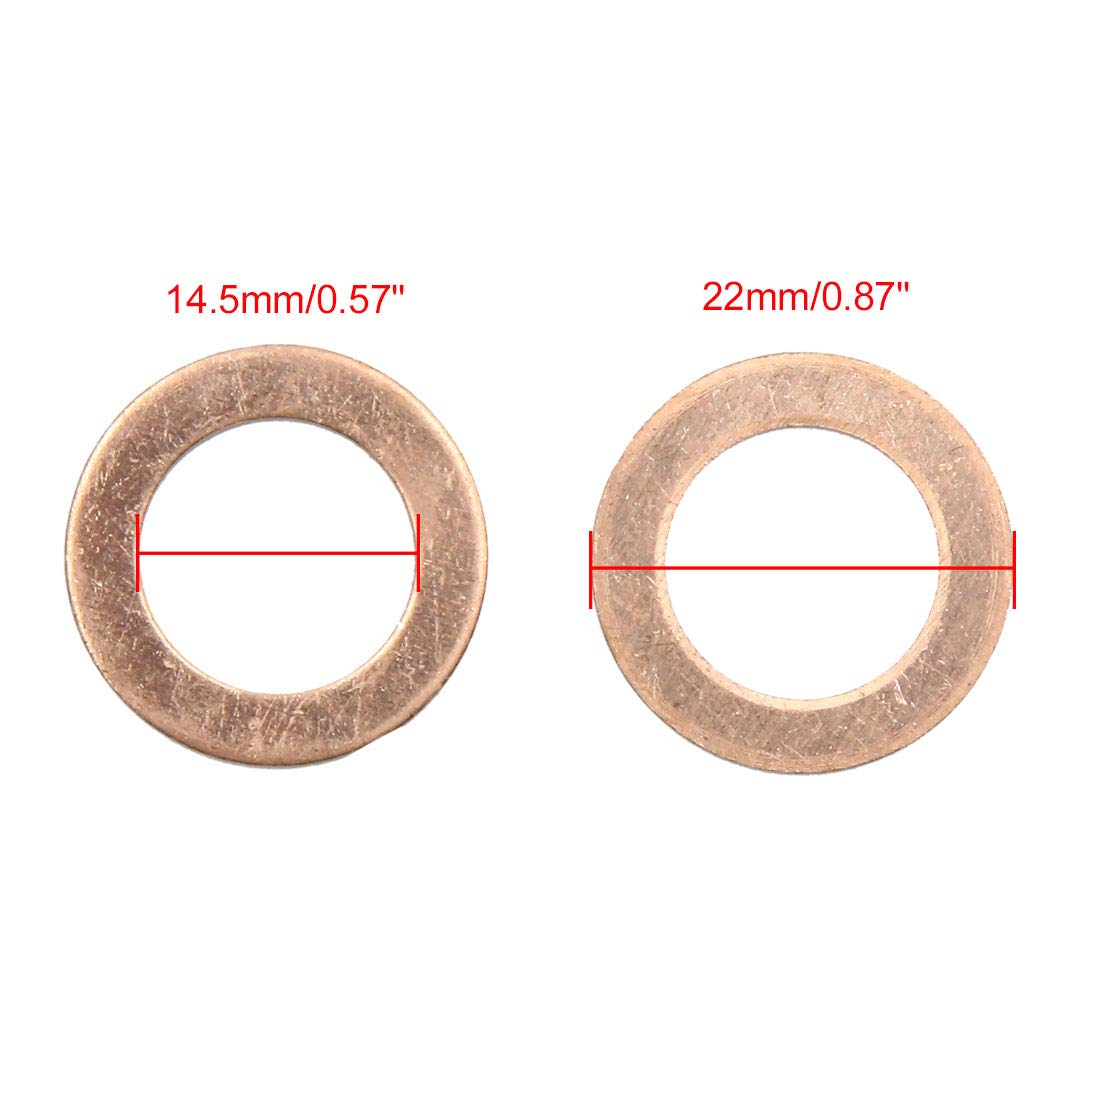 X AUTOHAUX 14.5mm Inner Dia Copper Crush Washers Flat Car Sealing Gaskets Rings 30pcs by X AUTOHAUX (Image #3)